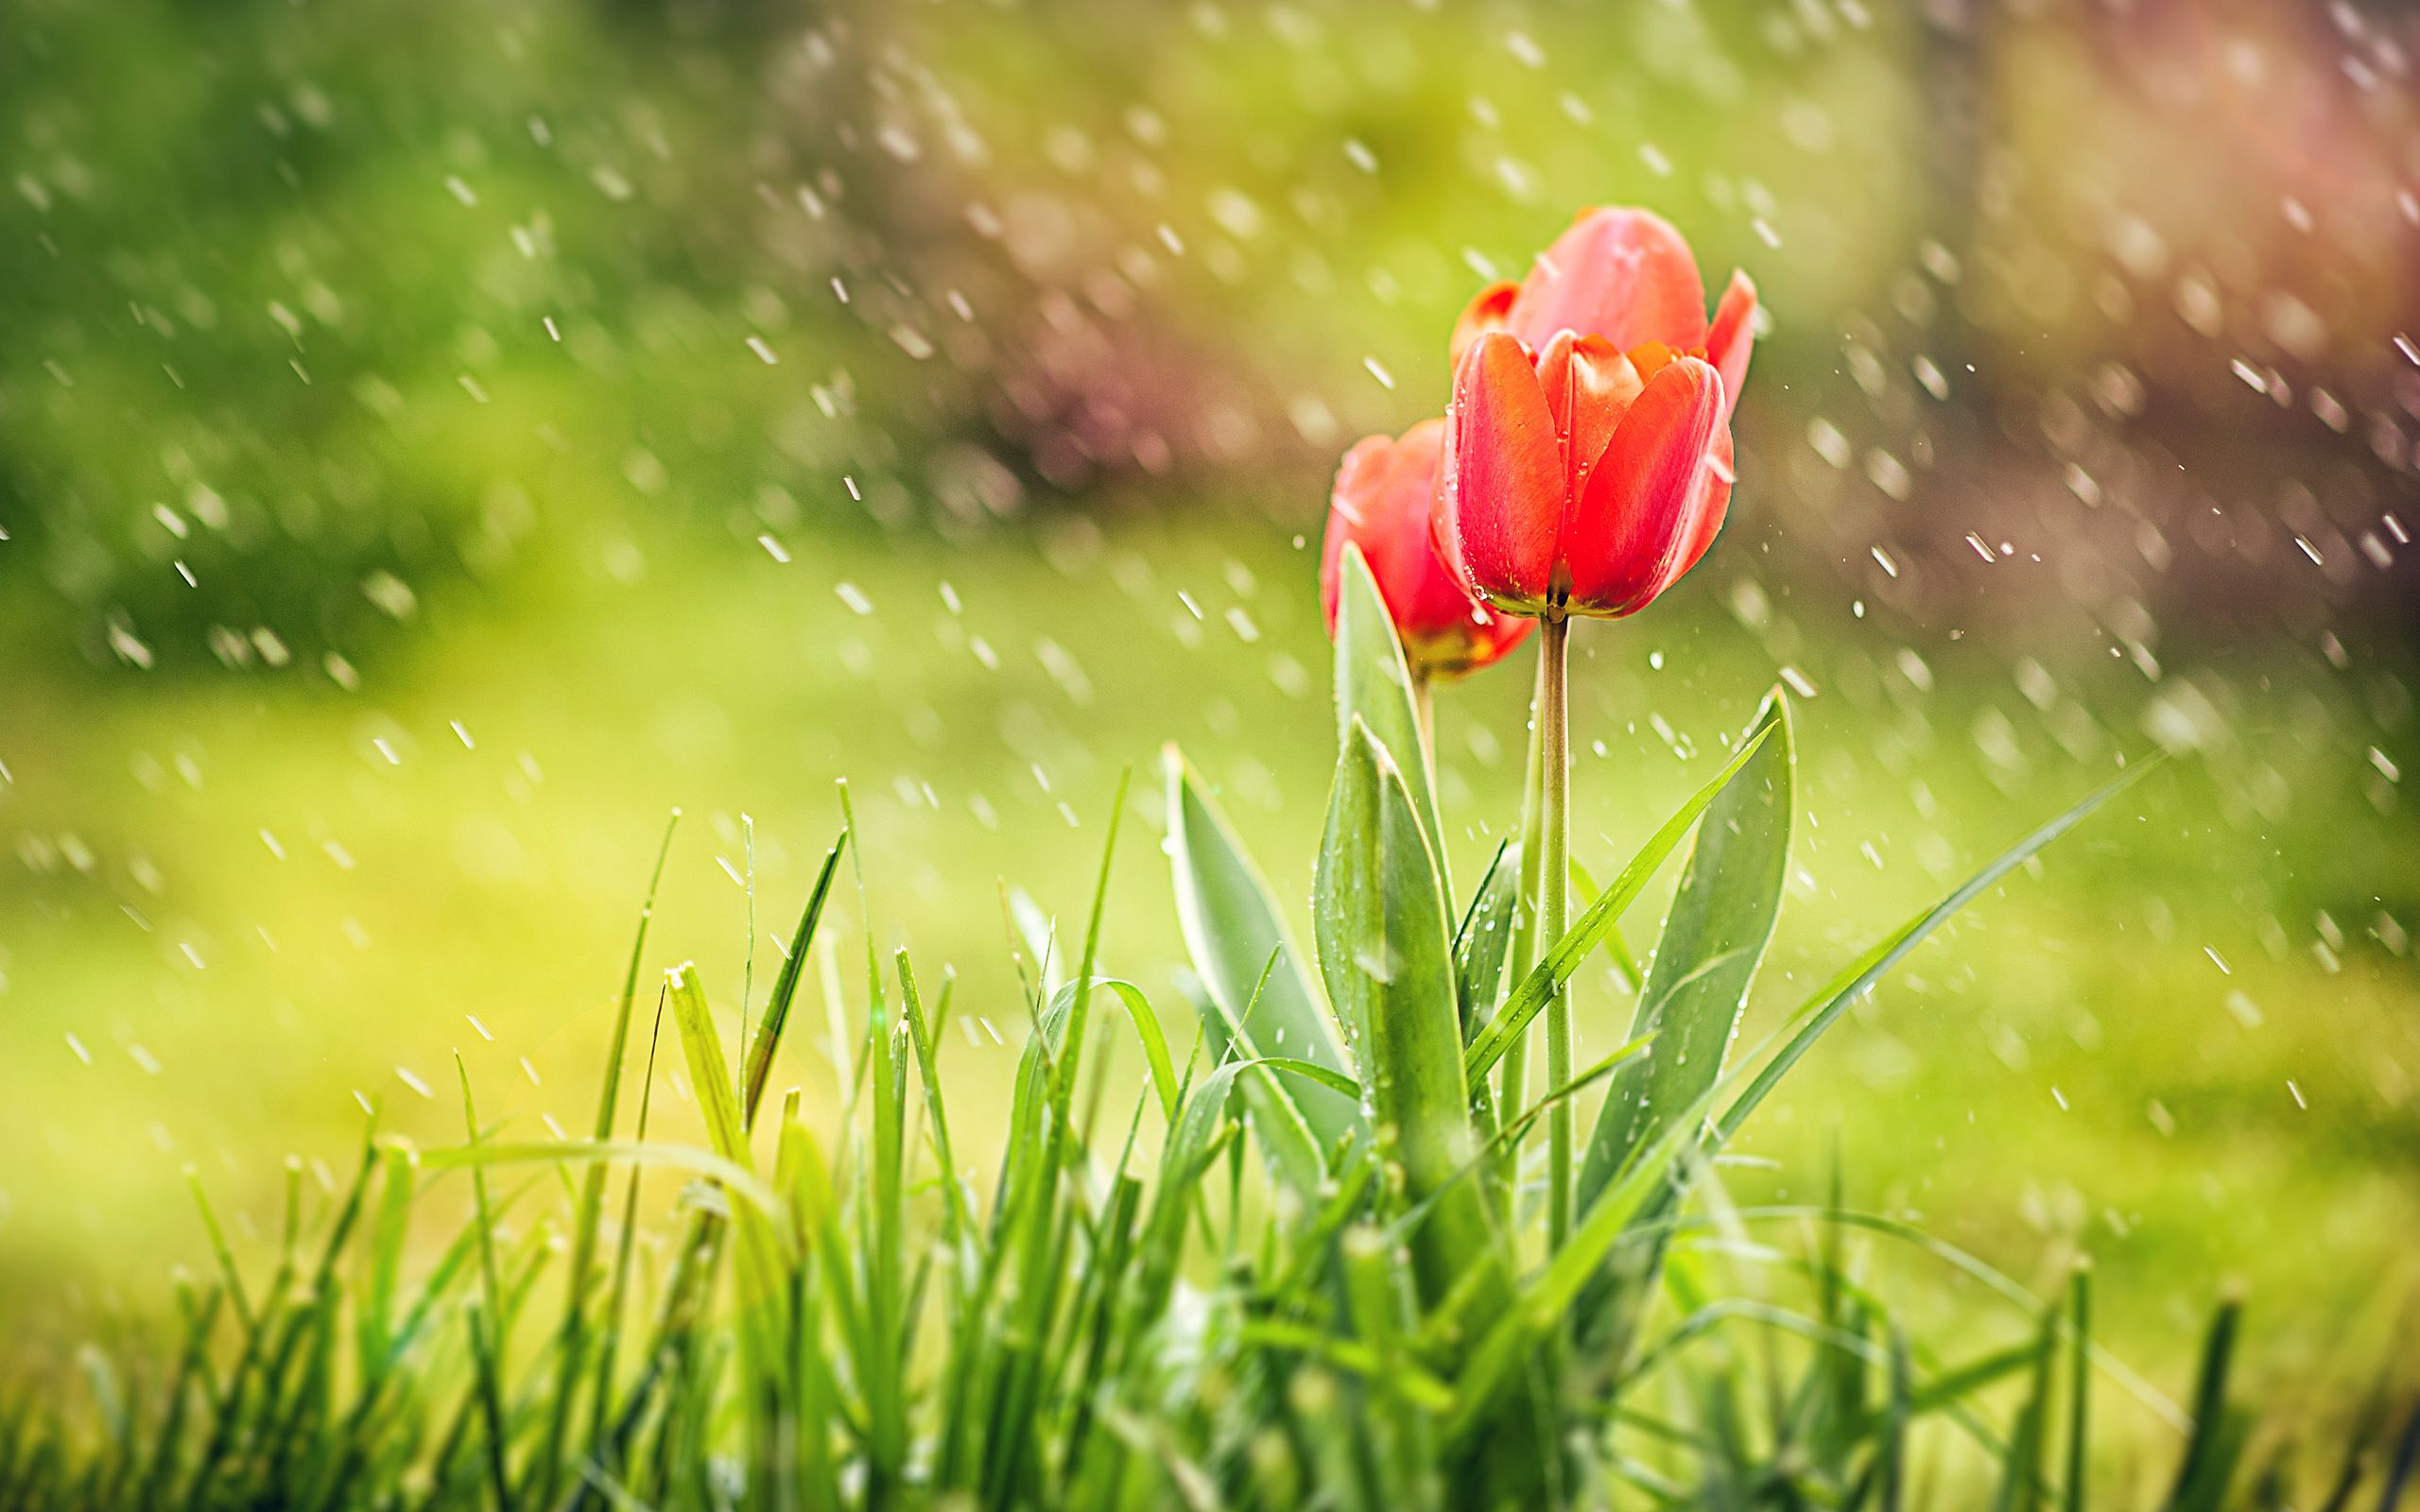 Red Tulip Rain Hd Wallpapers Red Flower Wallpaper Beautiful Flowers Wallpapers Rain Wallpapers